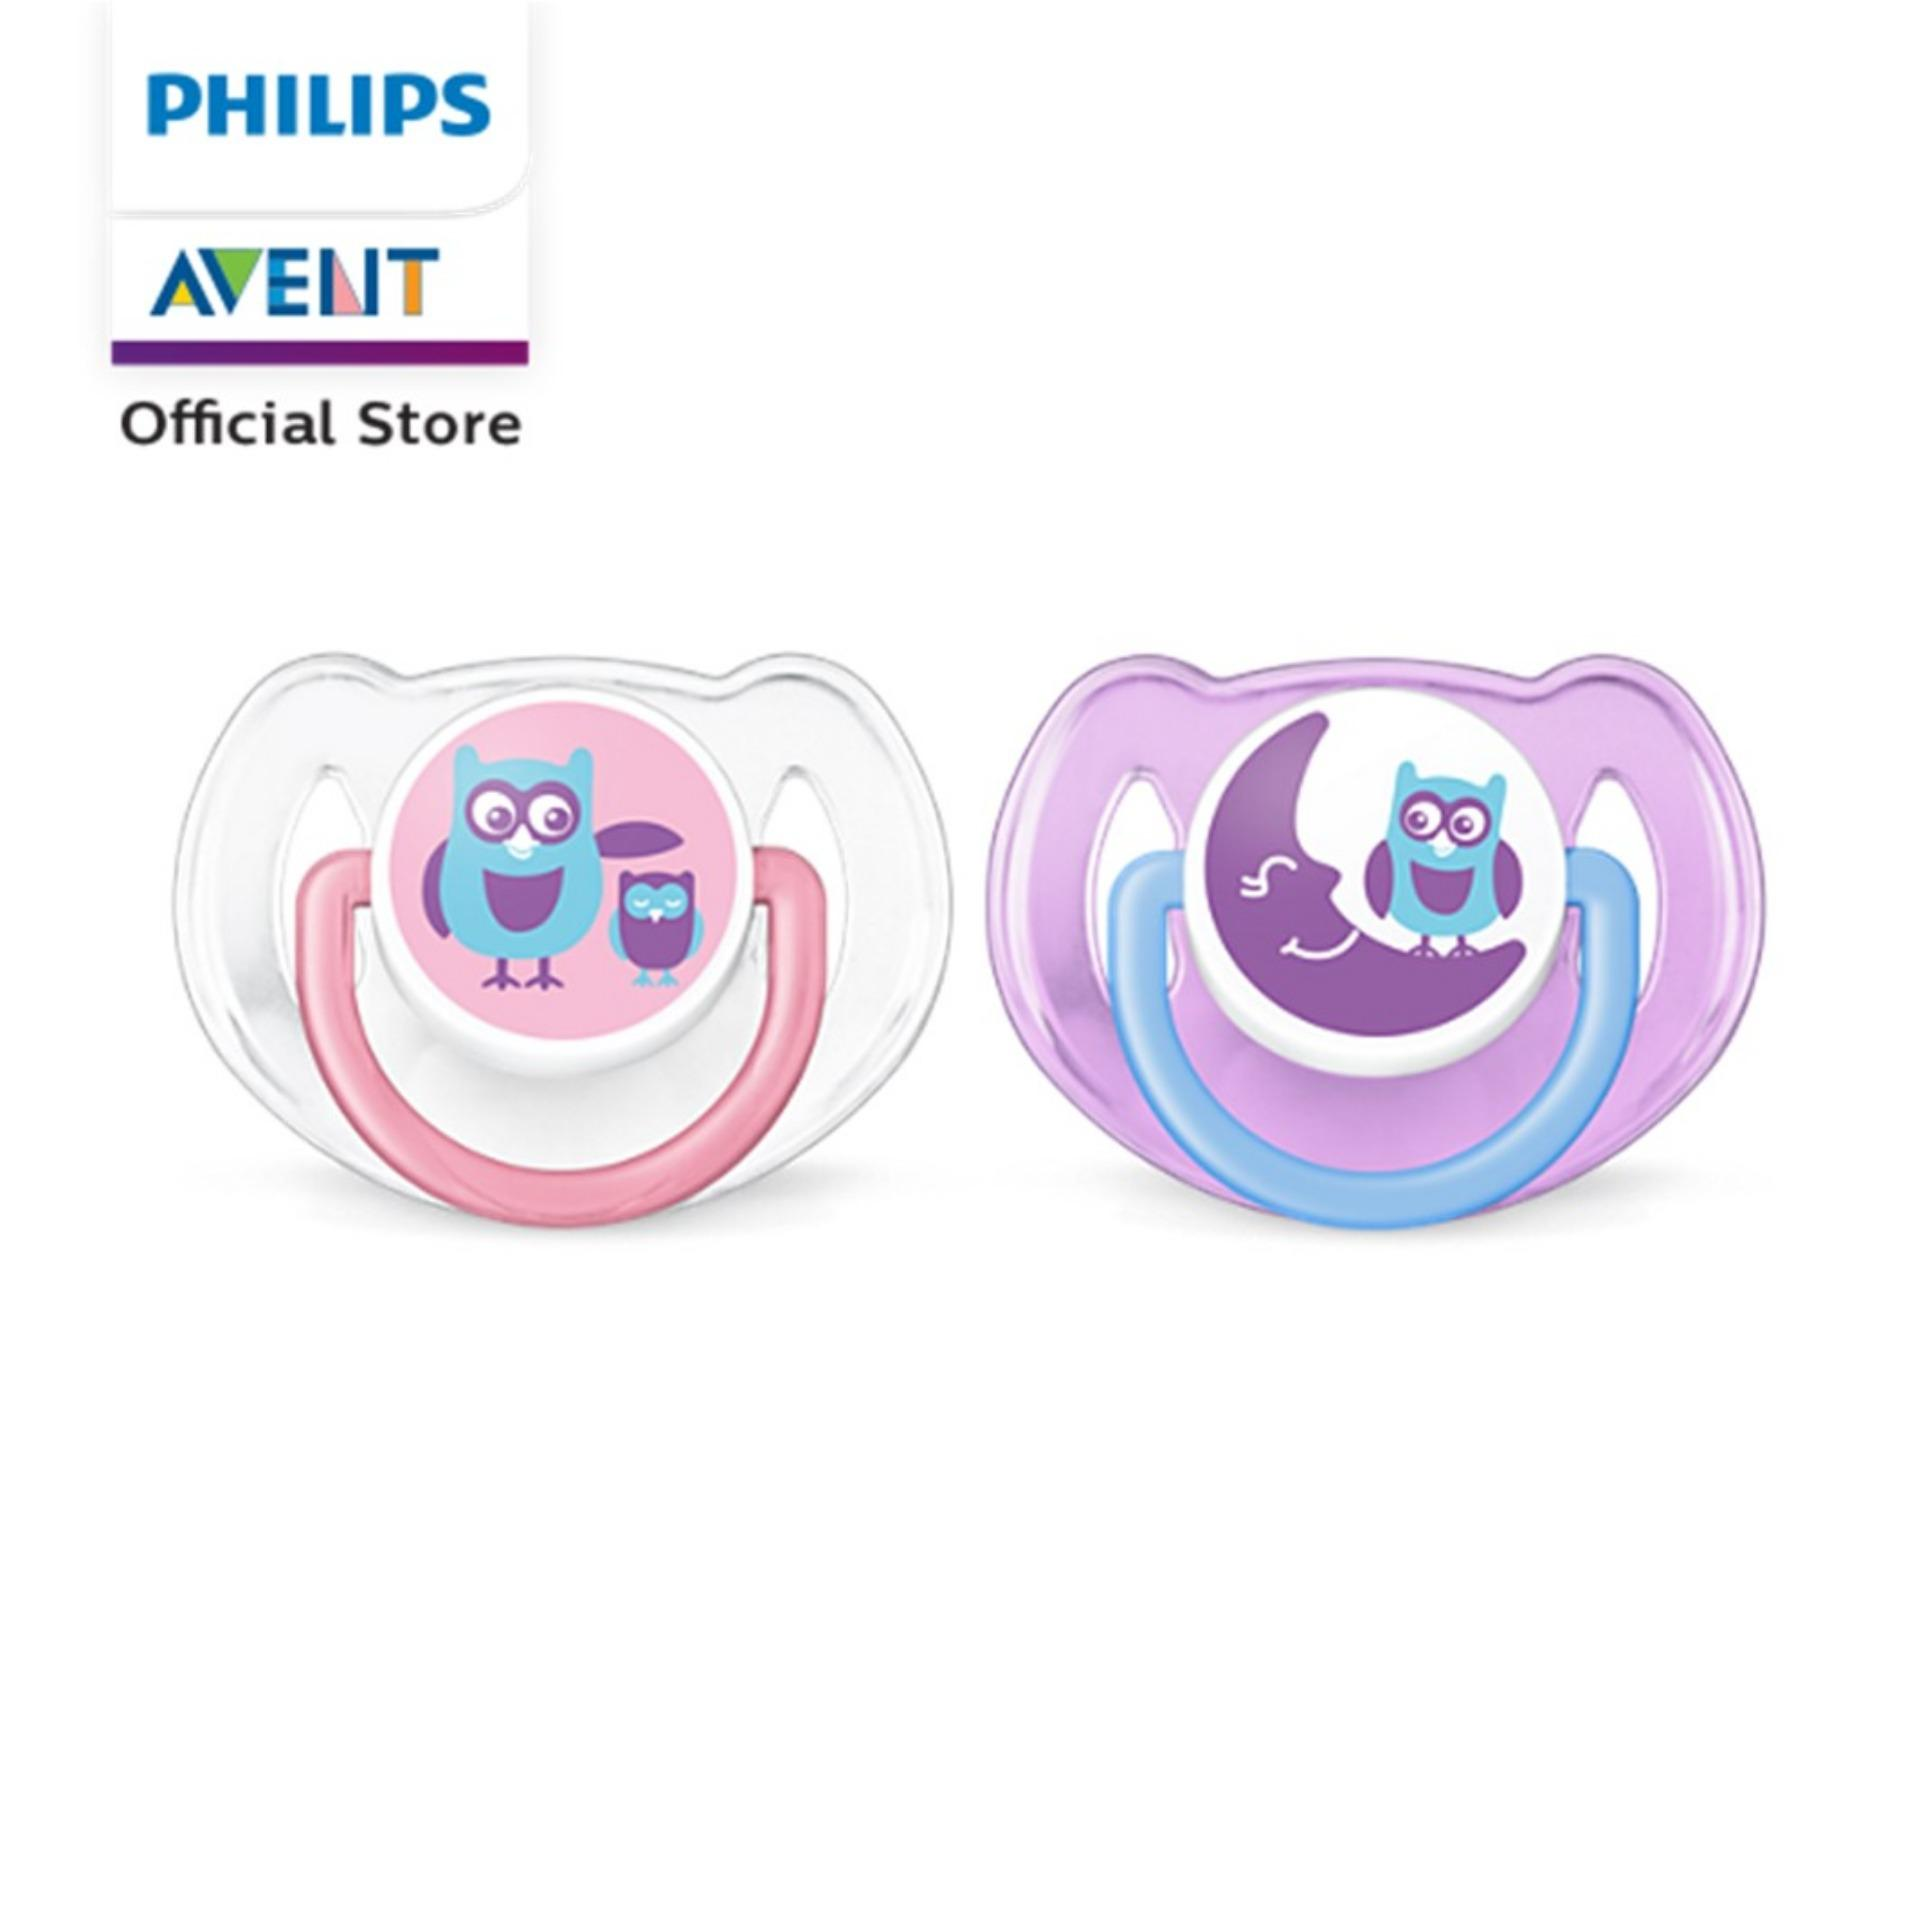 Philips Avent Classic Pacifier 6-18m Twin Pack - Pink By Philips Avent Official Store.